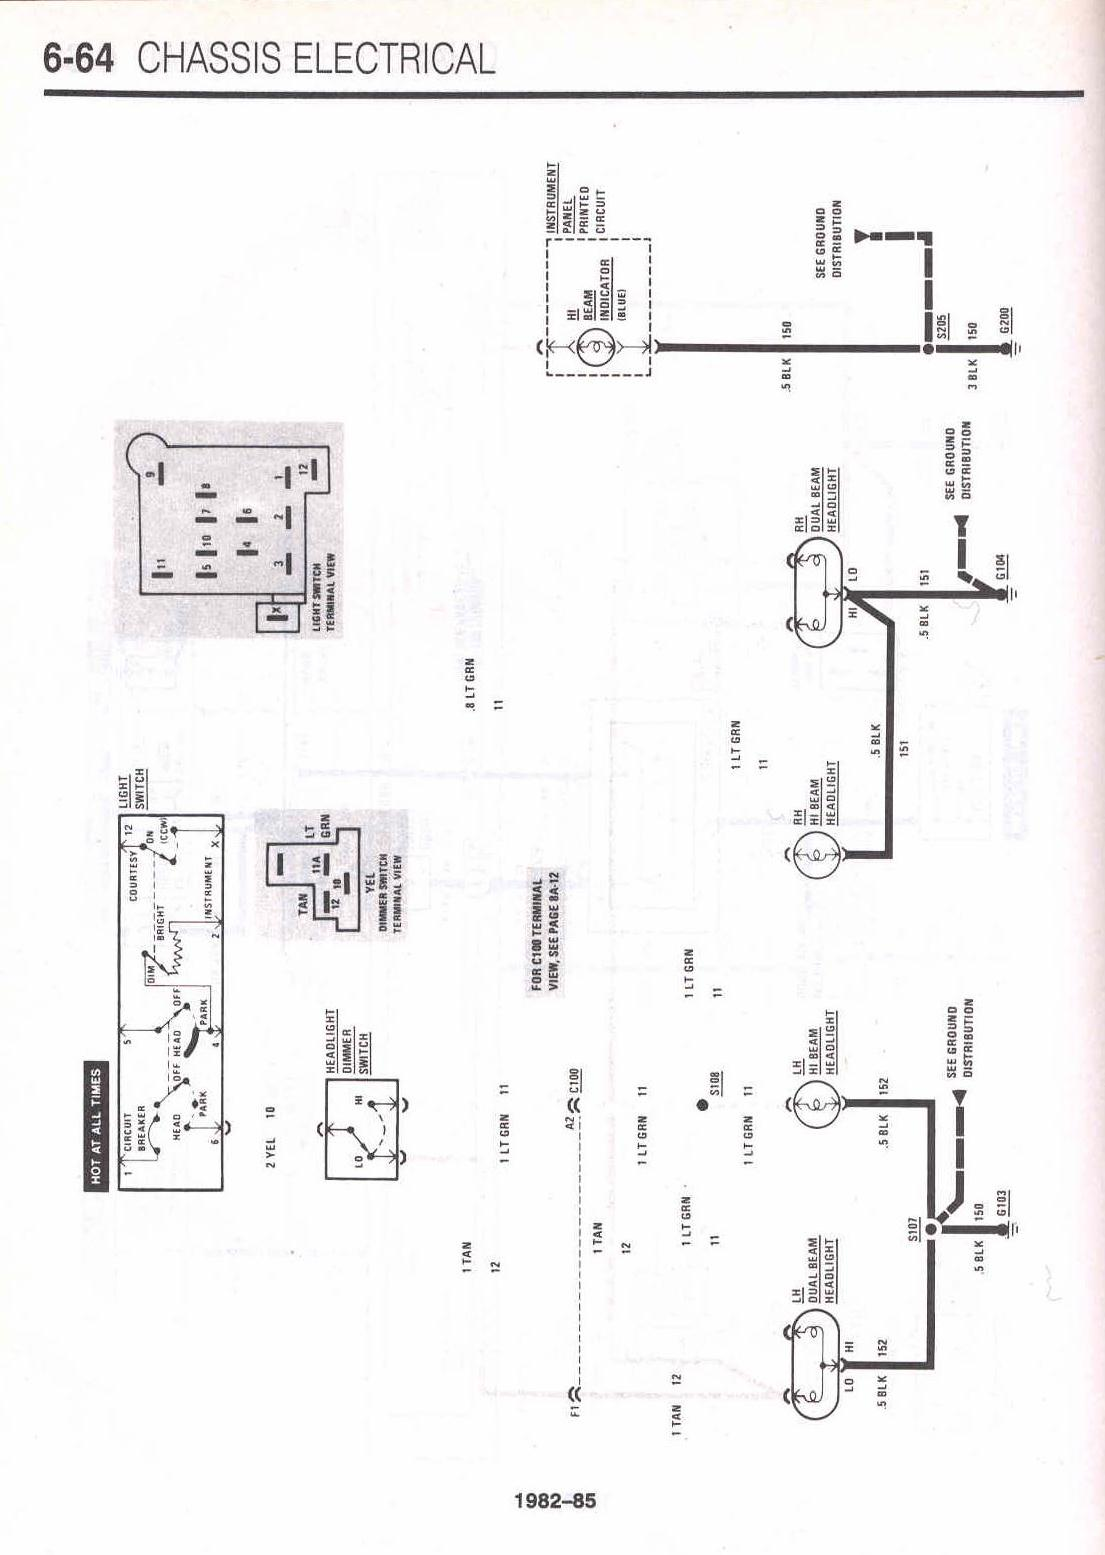 68 camaro headlight wiring diagram 85 camaro headlight wiring diagram car info